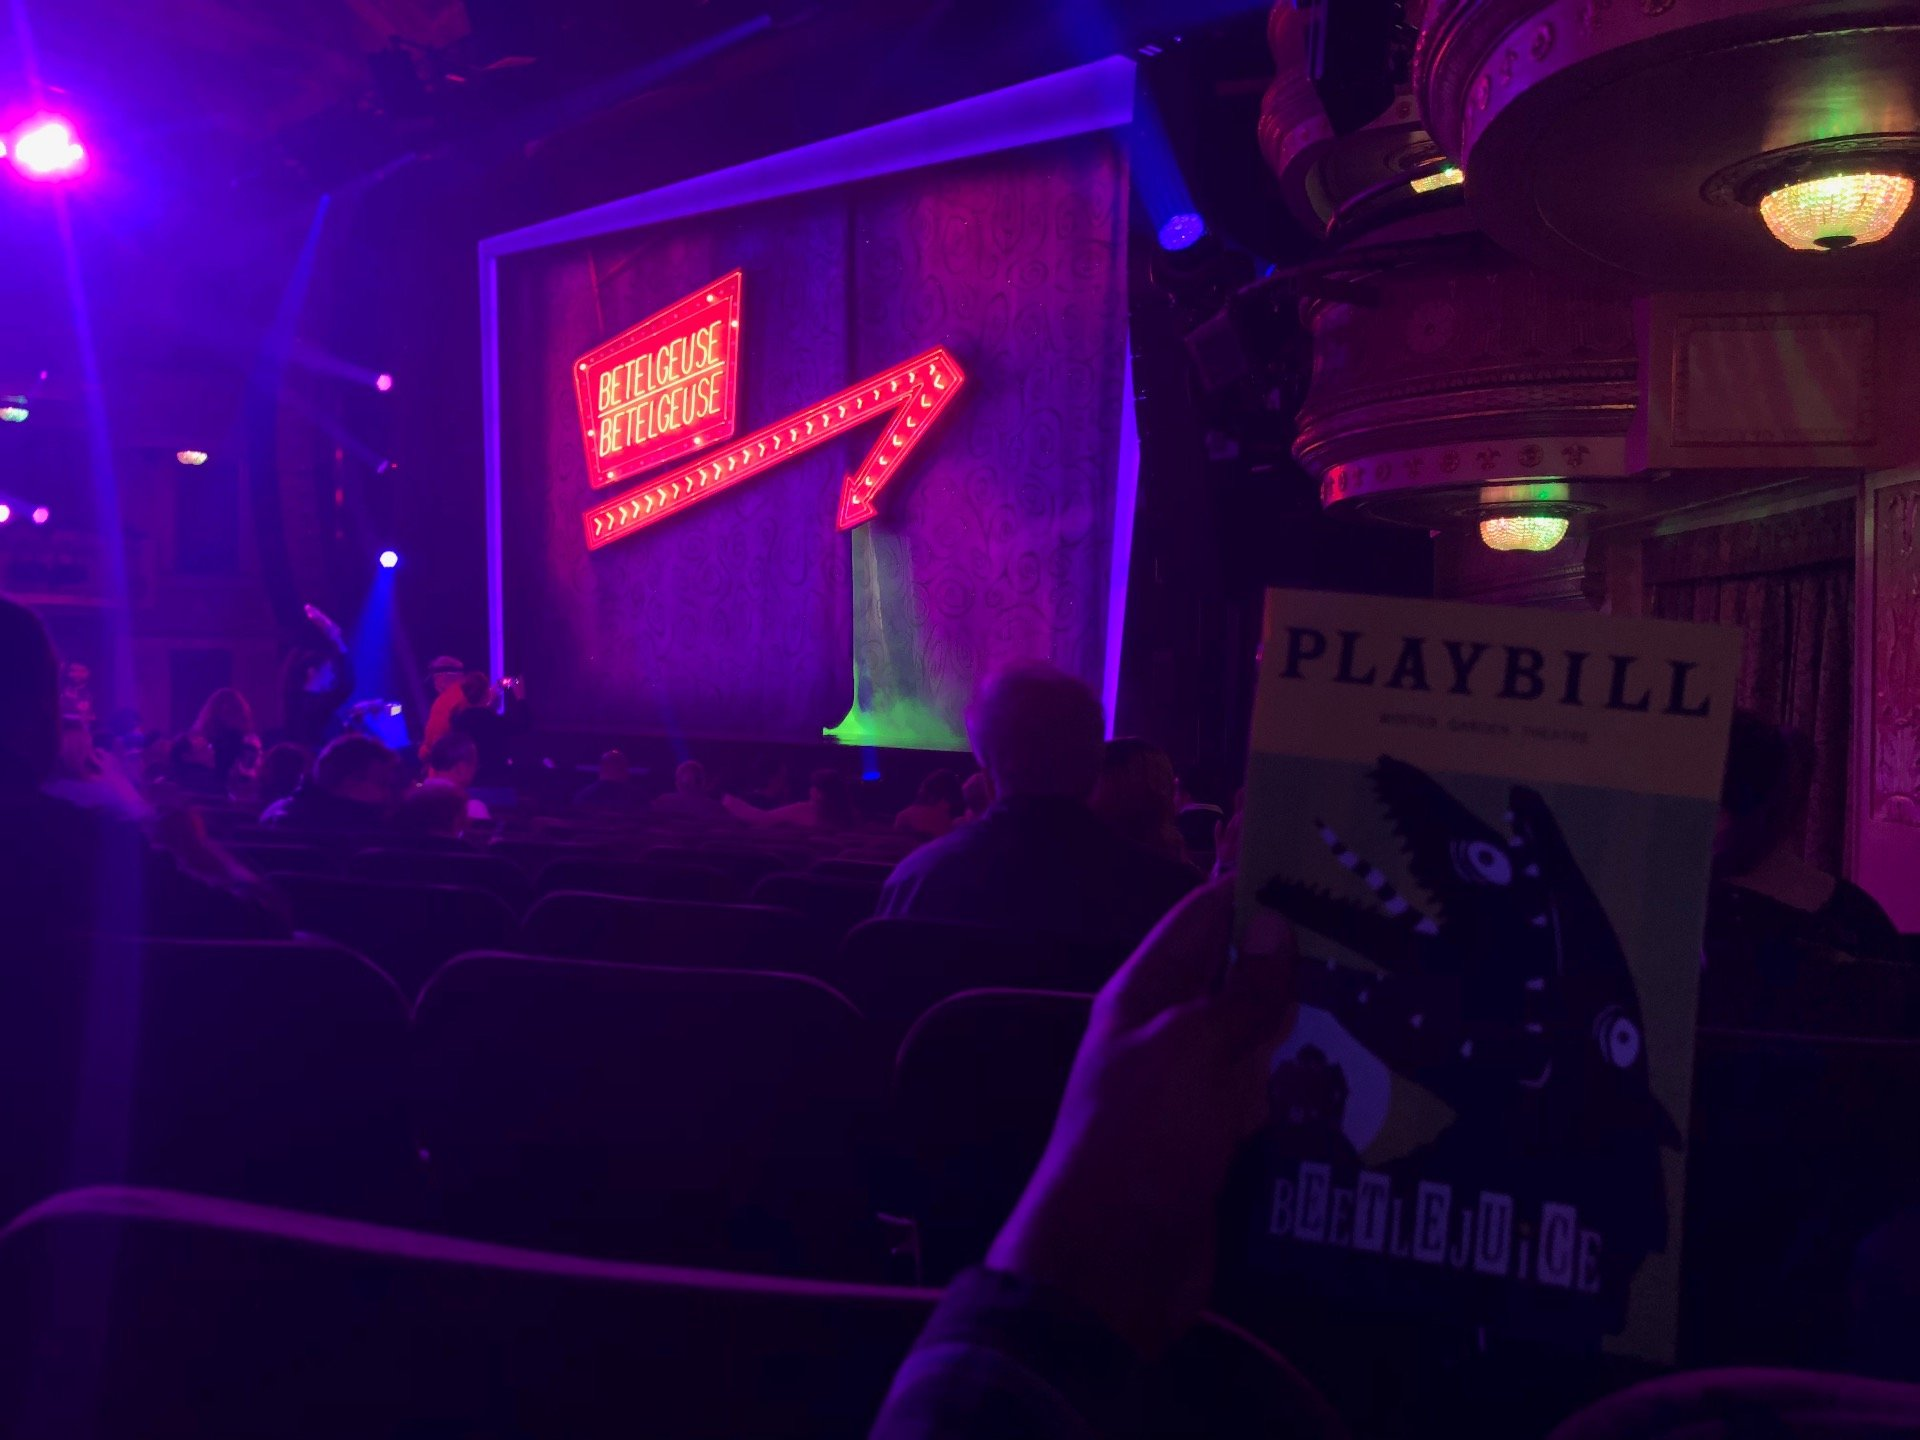 Winter Garden Theatre Section Orchestra R Row N Seat 32